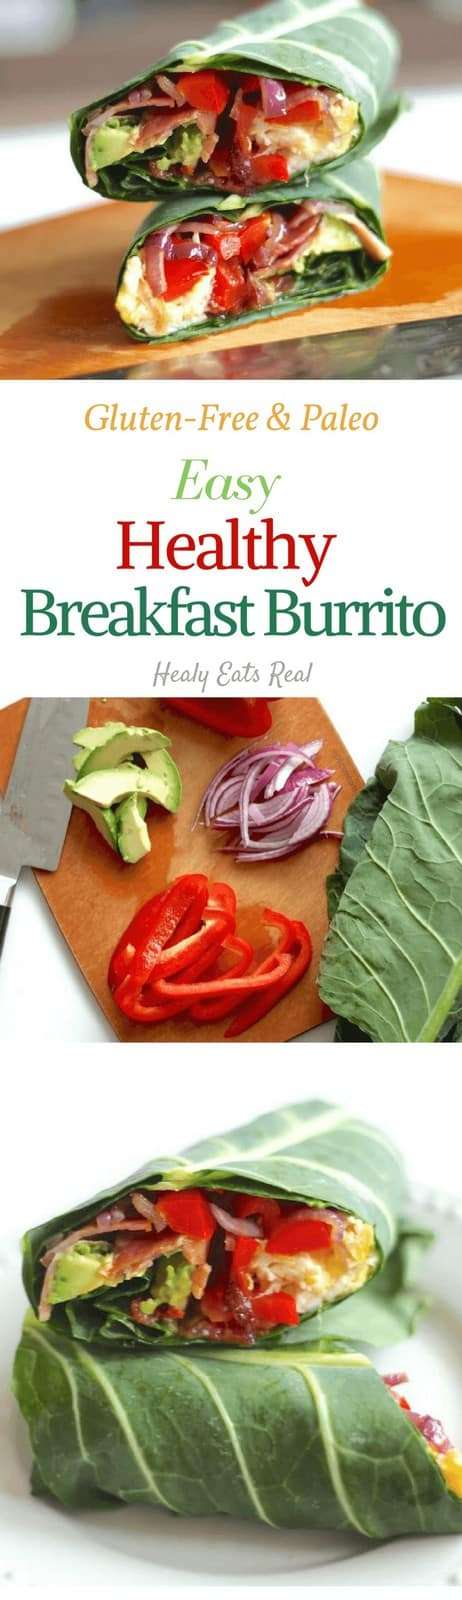 Healthy Breakfast Burrito (Paleo, Gluten-Free) - This healthy breakfast burrito is paleo, gluten free and the perfect antidote to a boring breakfast rut. It's an easy wrap that you can take on the go! #burrito #breakfast #healthy #glutenfree #healyeatsreal